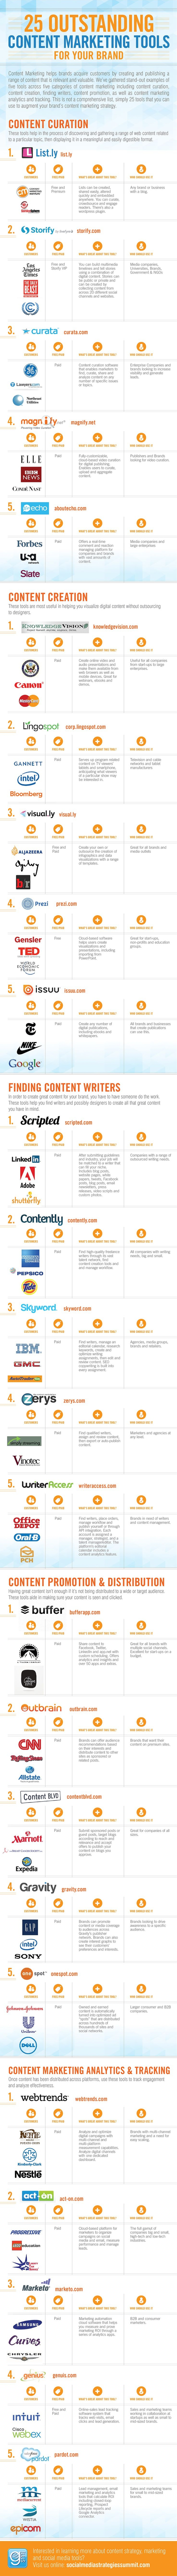 Looking for the best content marketing tools in 2014? We've got you covered! Here's a terrific list for you to make finding the best tools the easiest with a concise overview of all of them: